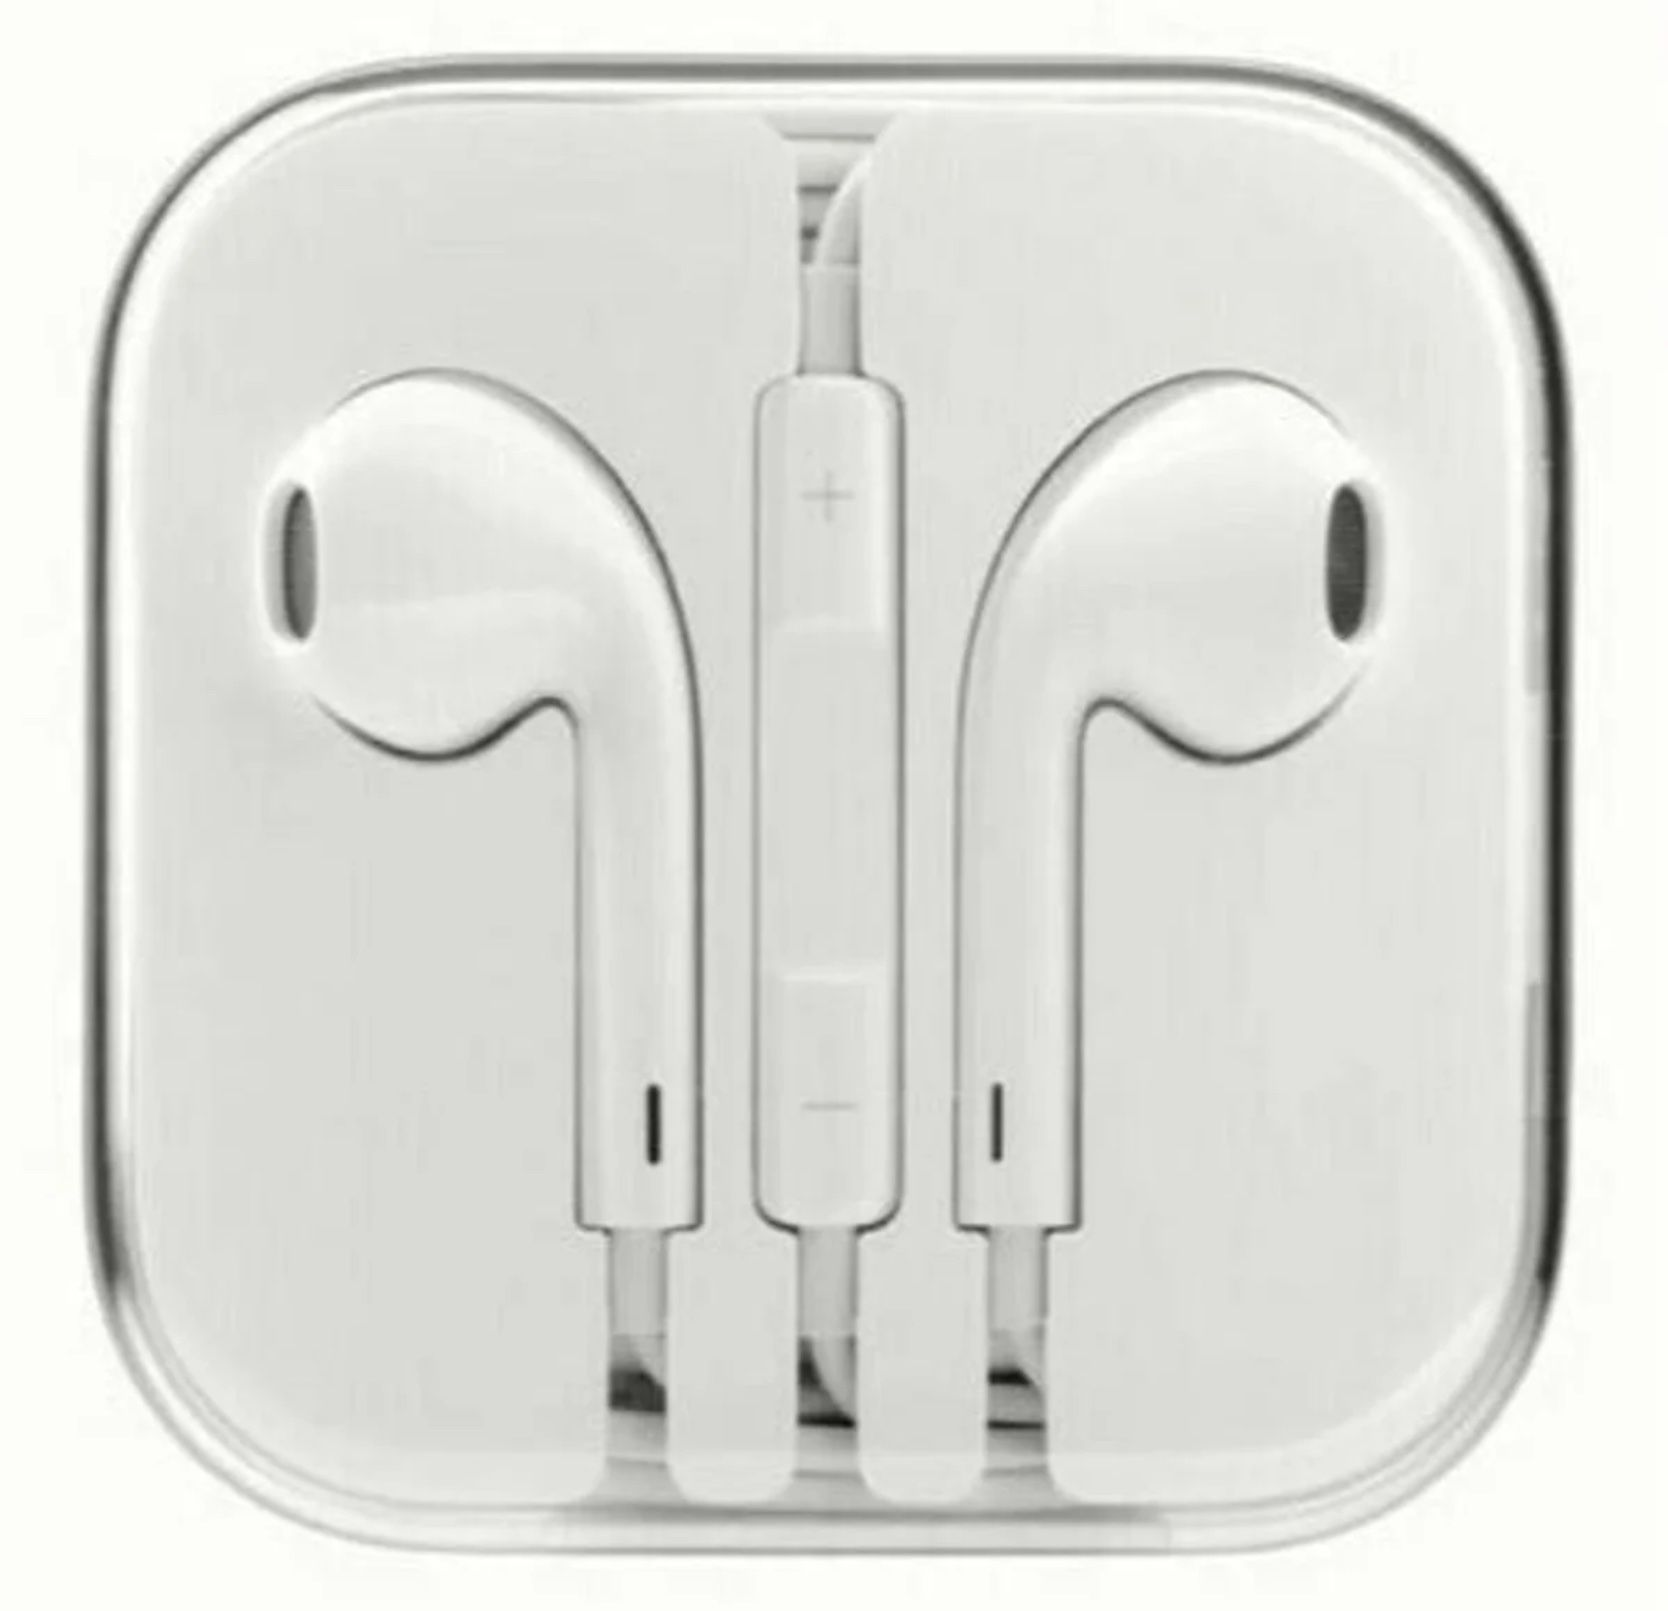 (2 Pack) 3.5mm Headphones, for Apple iPhone